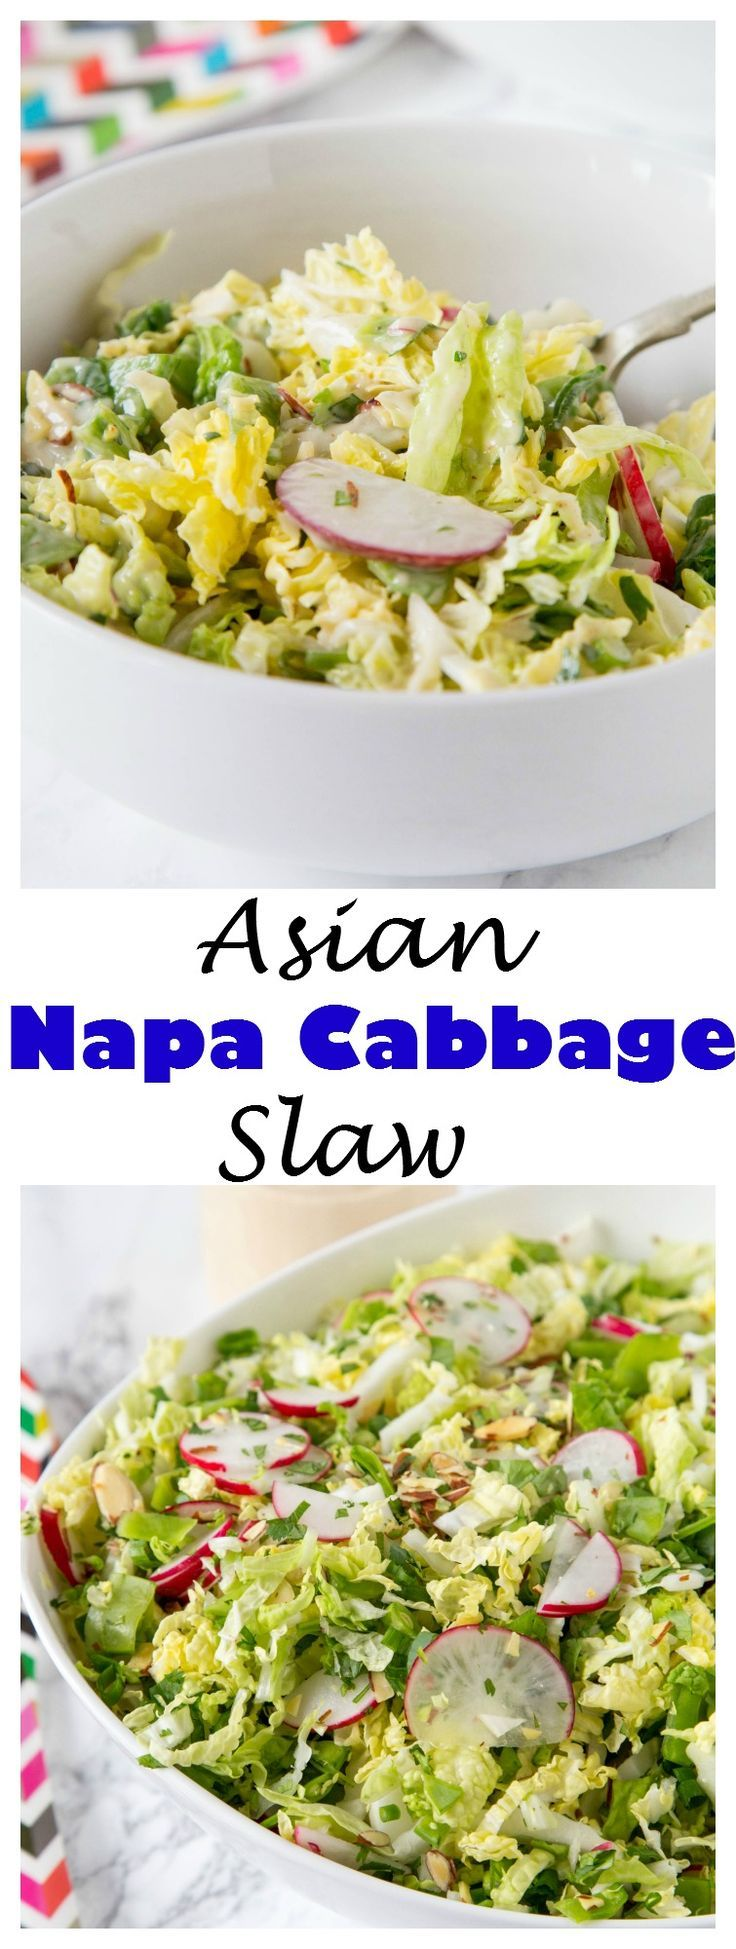 ASIAN NAPA CABBAGE SLAW – A CRUNCHY CABBAGE SLAW SALAD WITH LOTS OF VEGGIES AND A CREAMY ASIAN STYLE SOY DRESSING. GREAT FOR LUNCHES, GET TOGETHERS OR WITH YOUR NEXT BARBECUE.